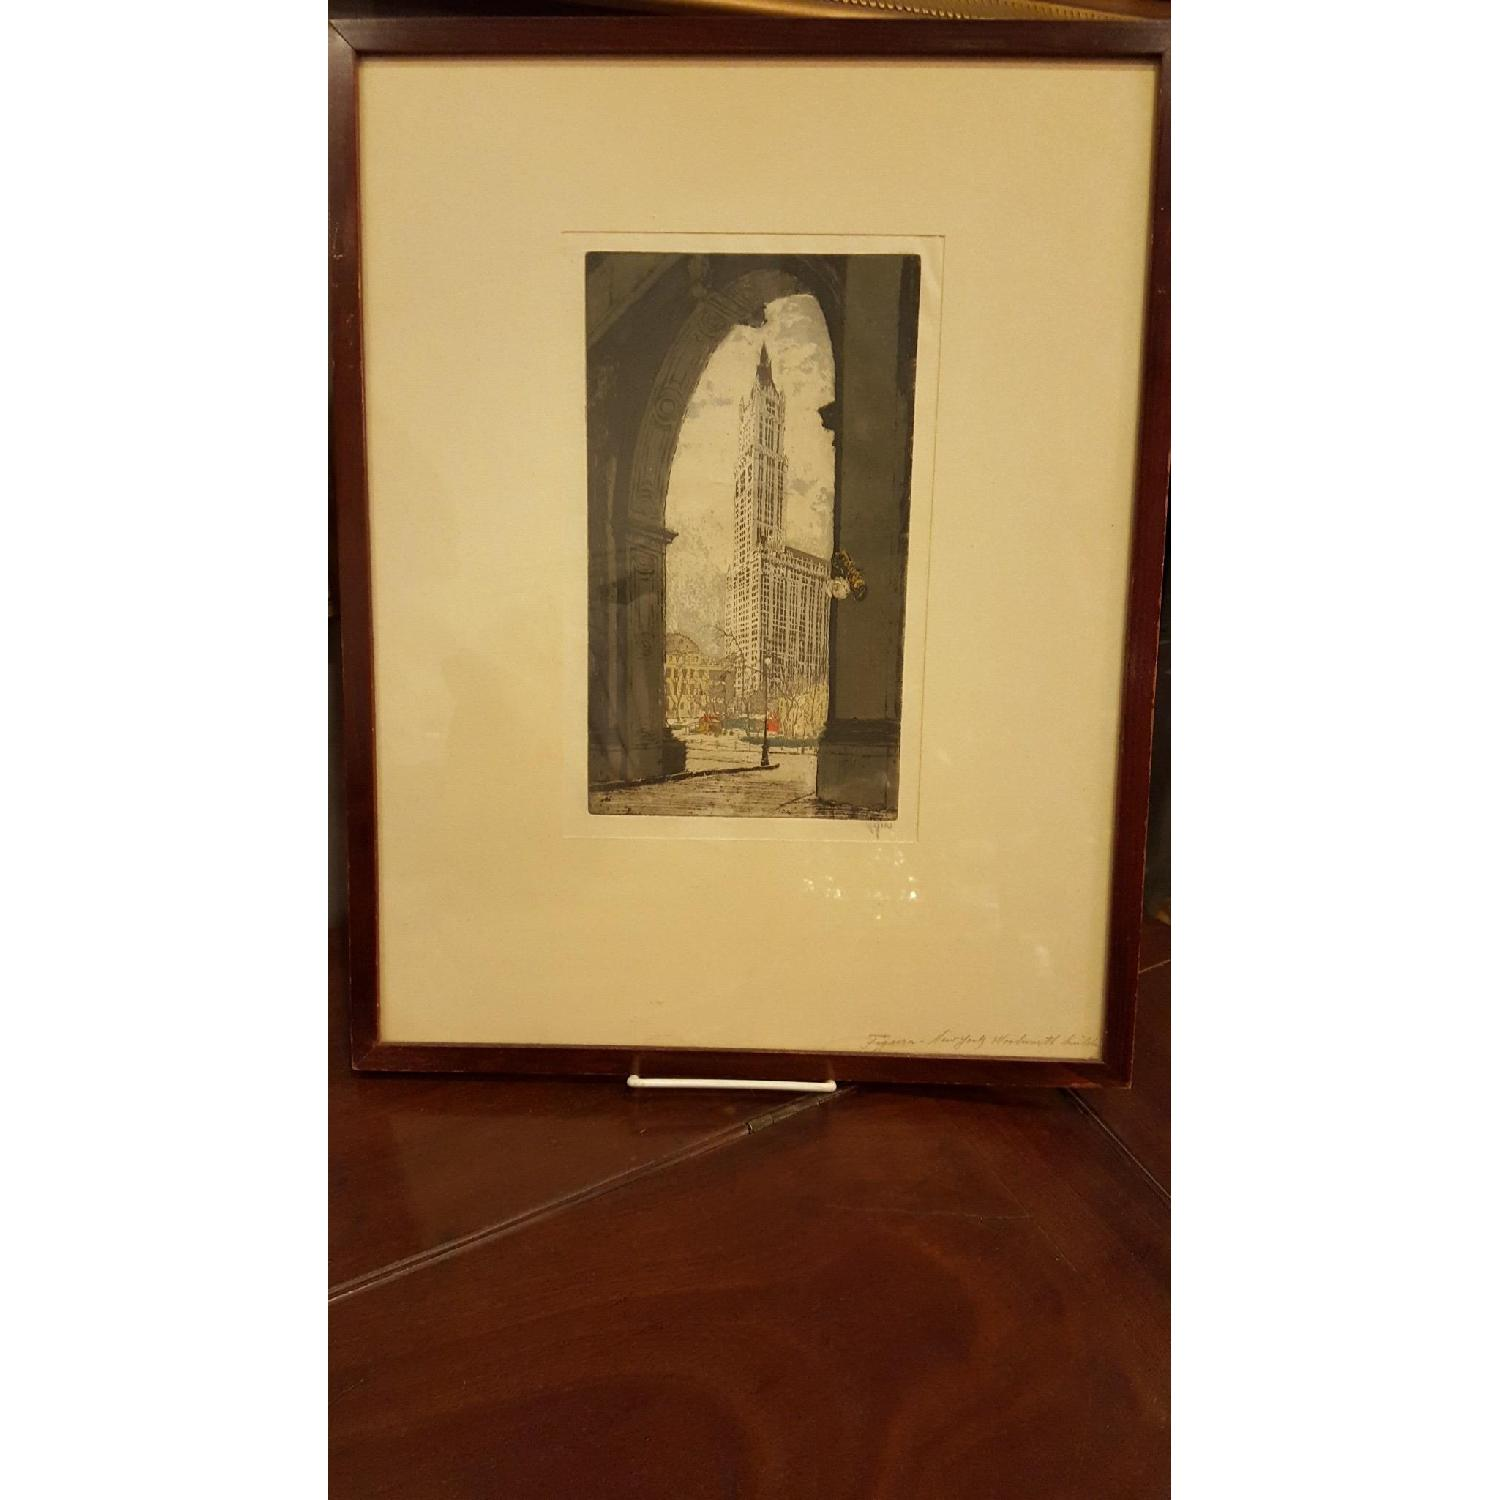 Hans Figura c1930 Etching - The Woolworth Building - image-1